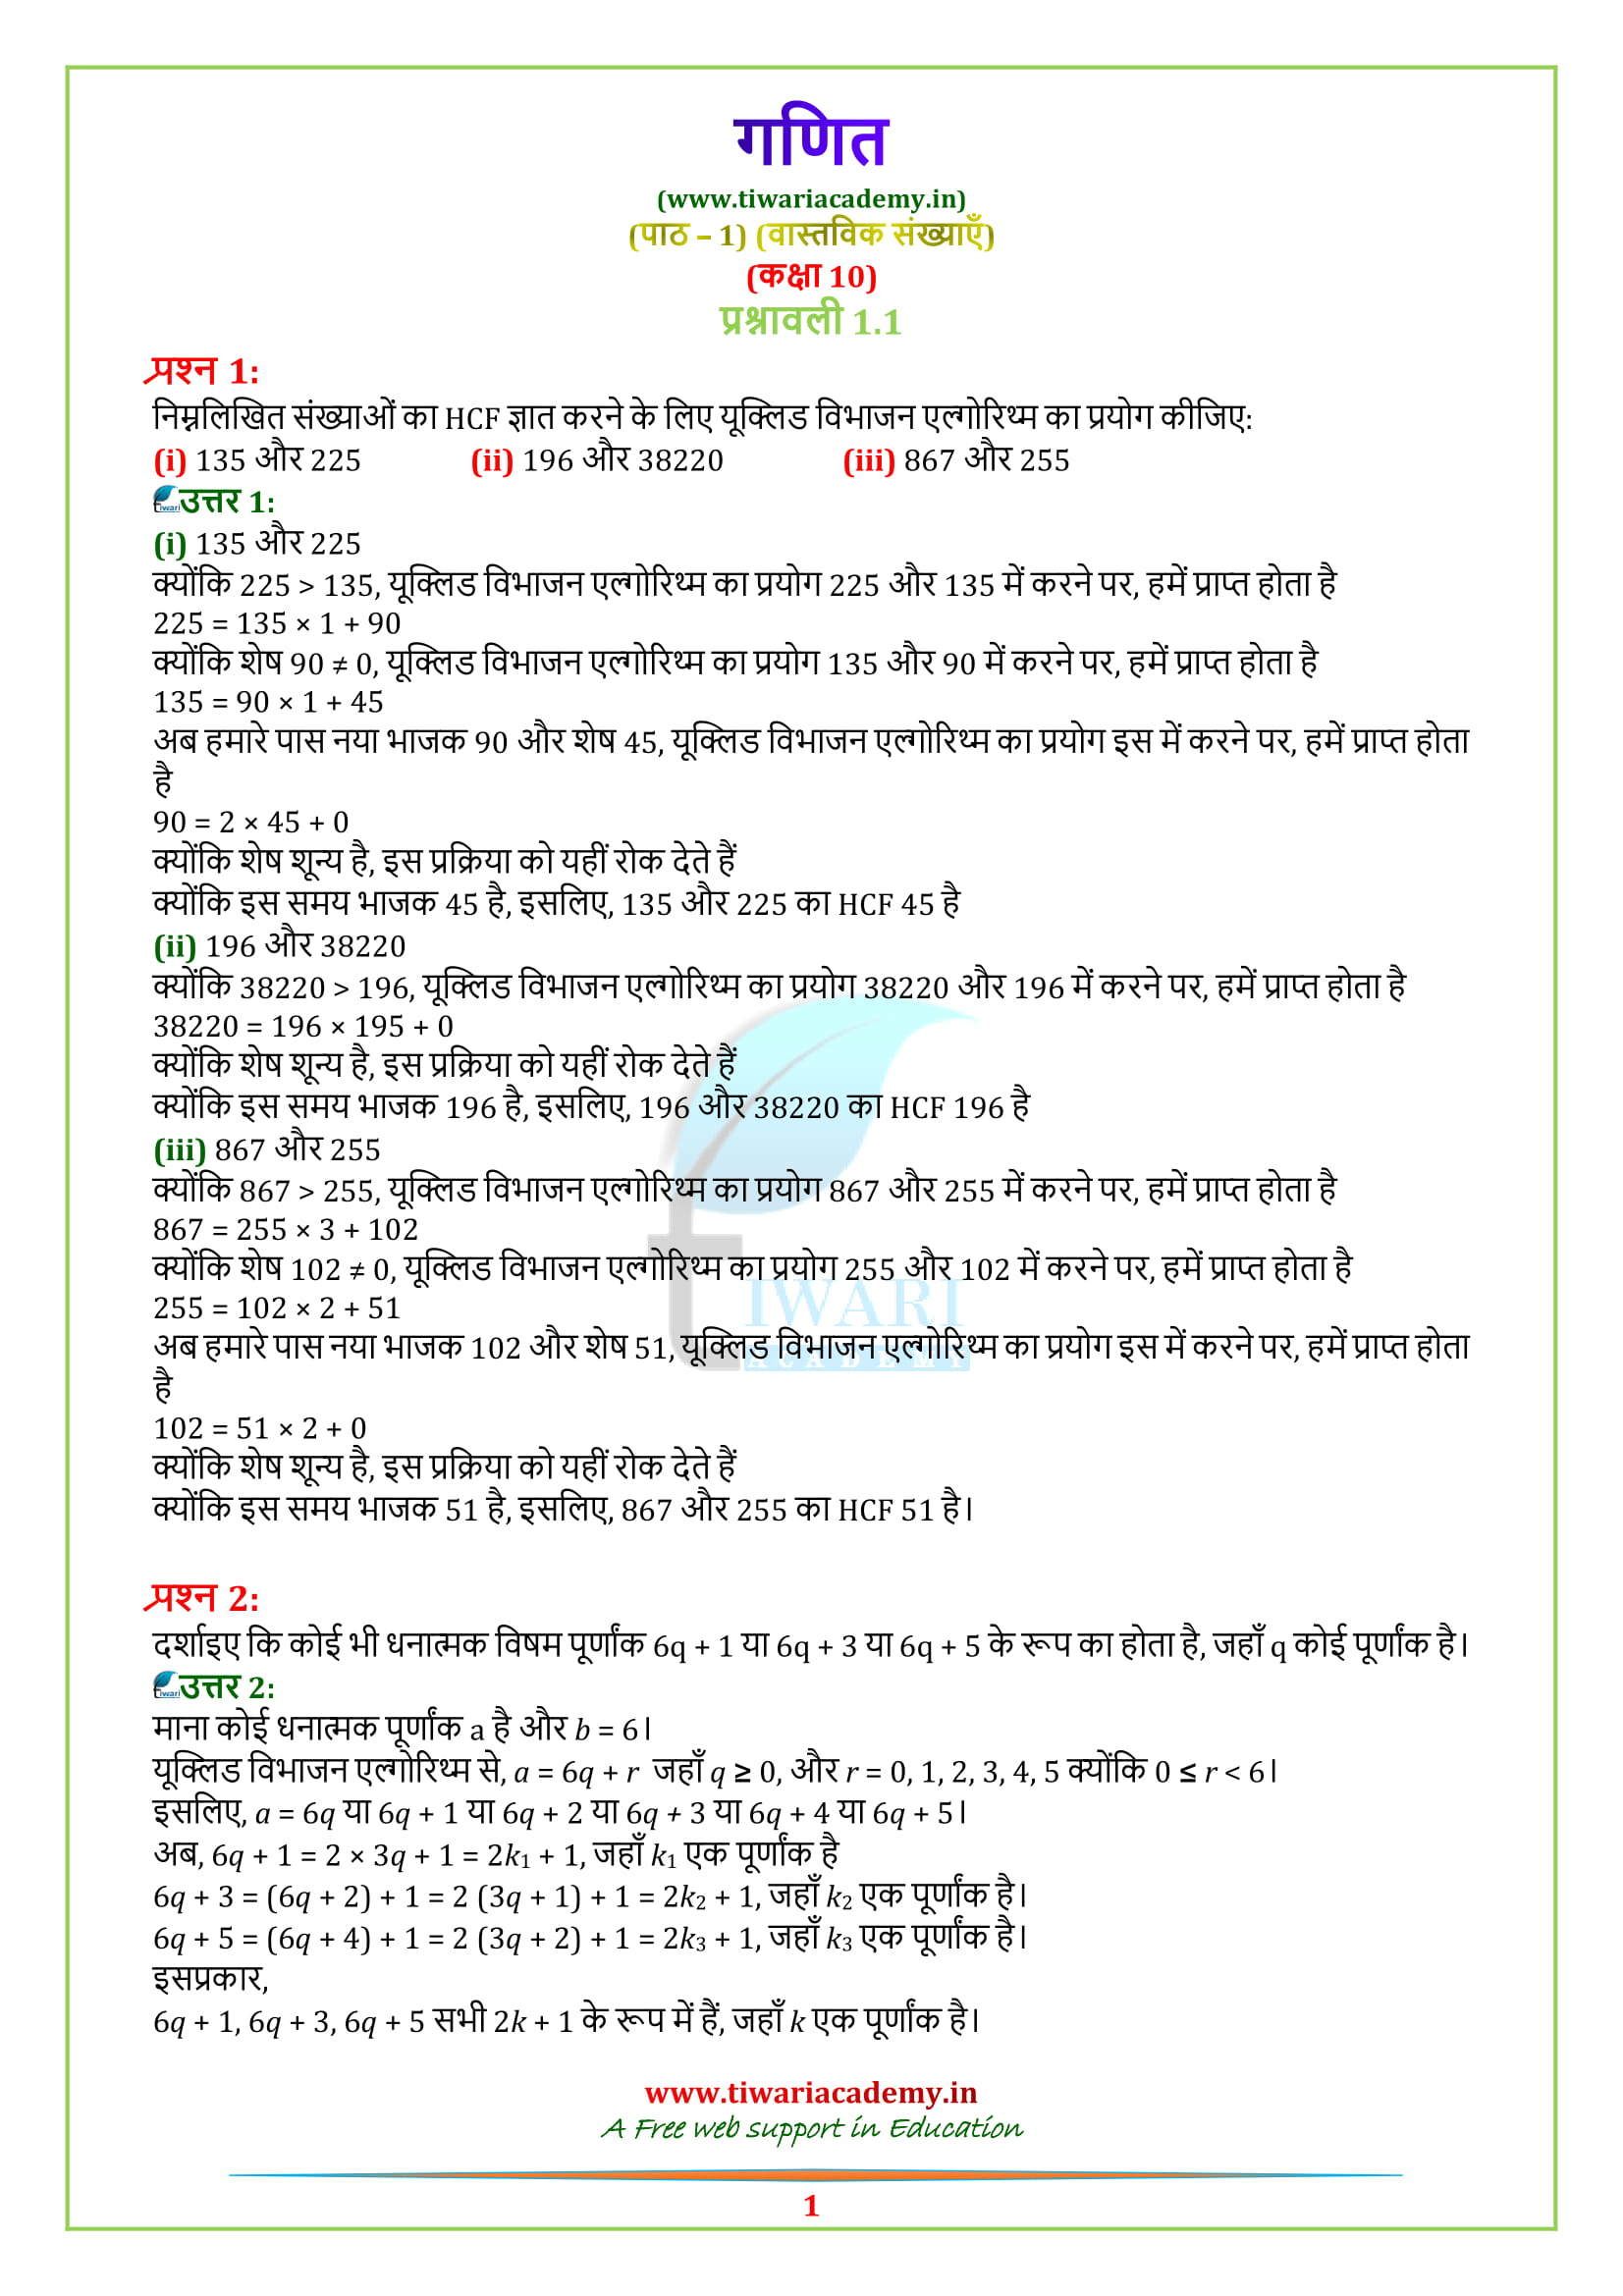 Class 10 Maths Chapter 1 Exercise 1.1 solutions in Hindi